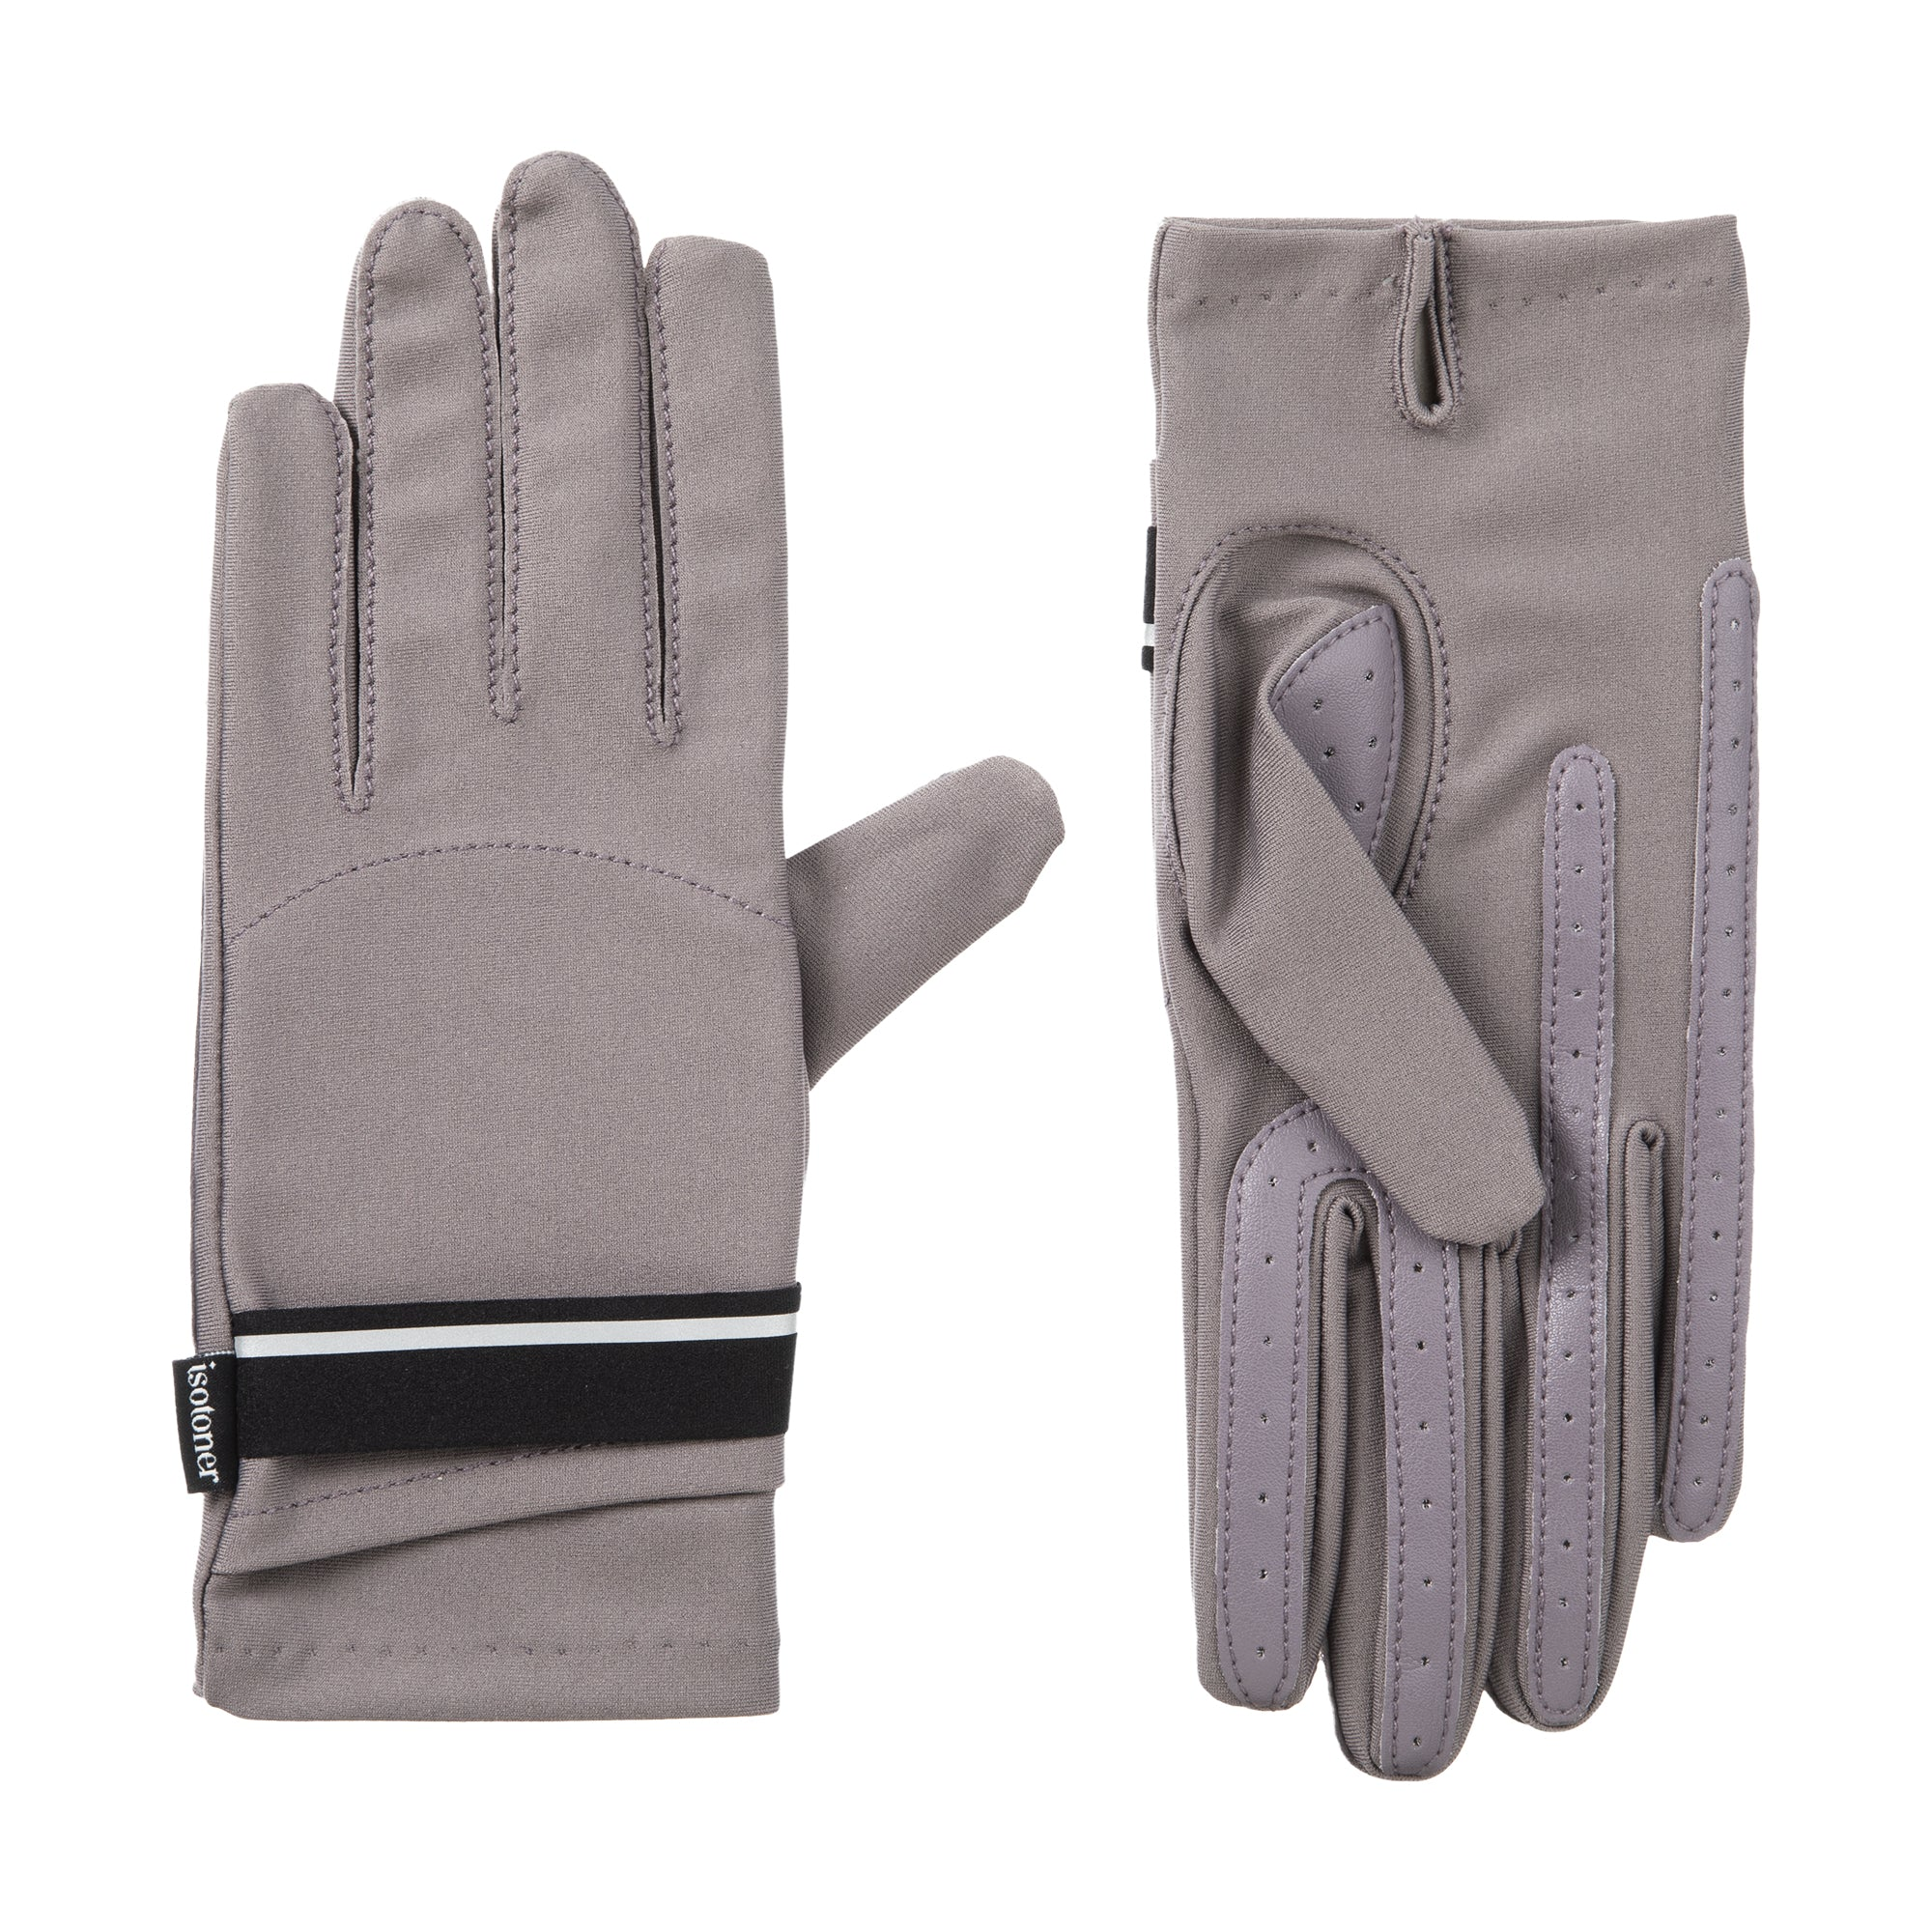 Women's Spandex Touchscreen Gloves with Pocket Dusty Lavender 3